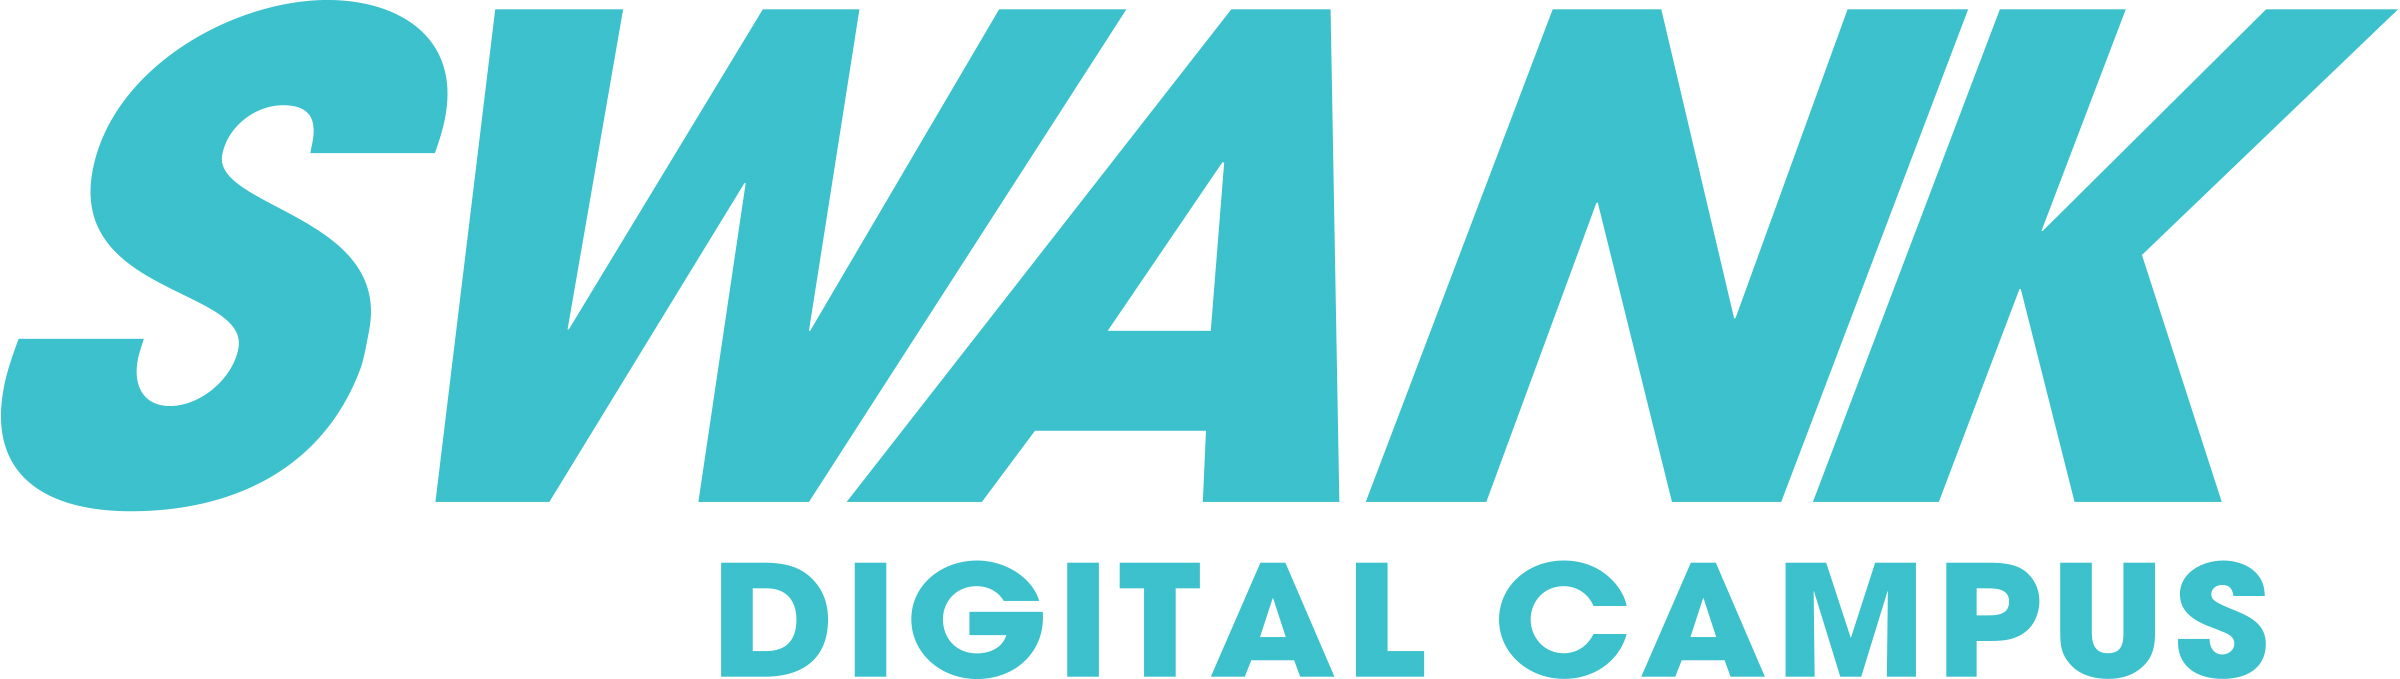 Swank Digital Campus Logo in teal color